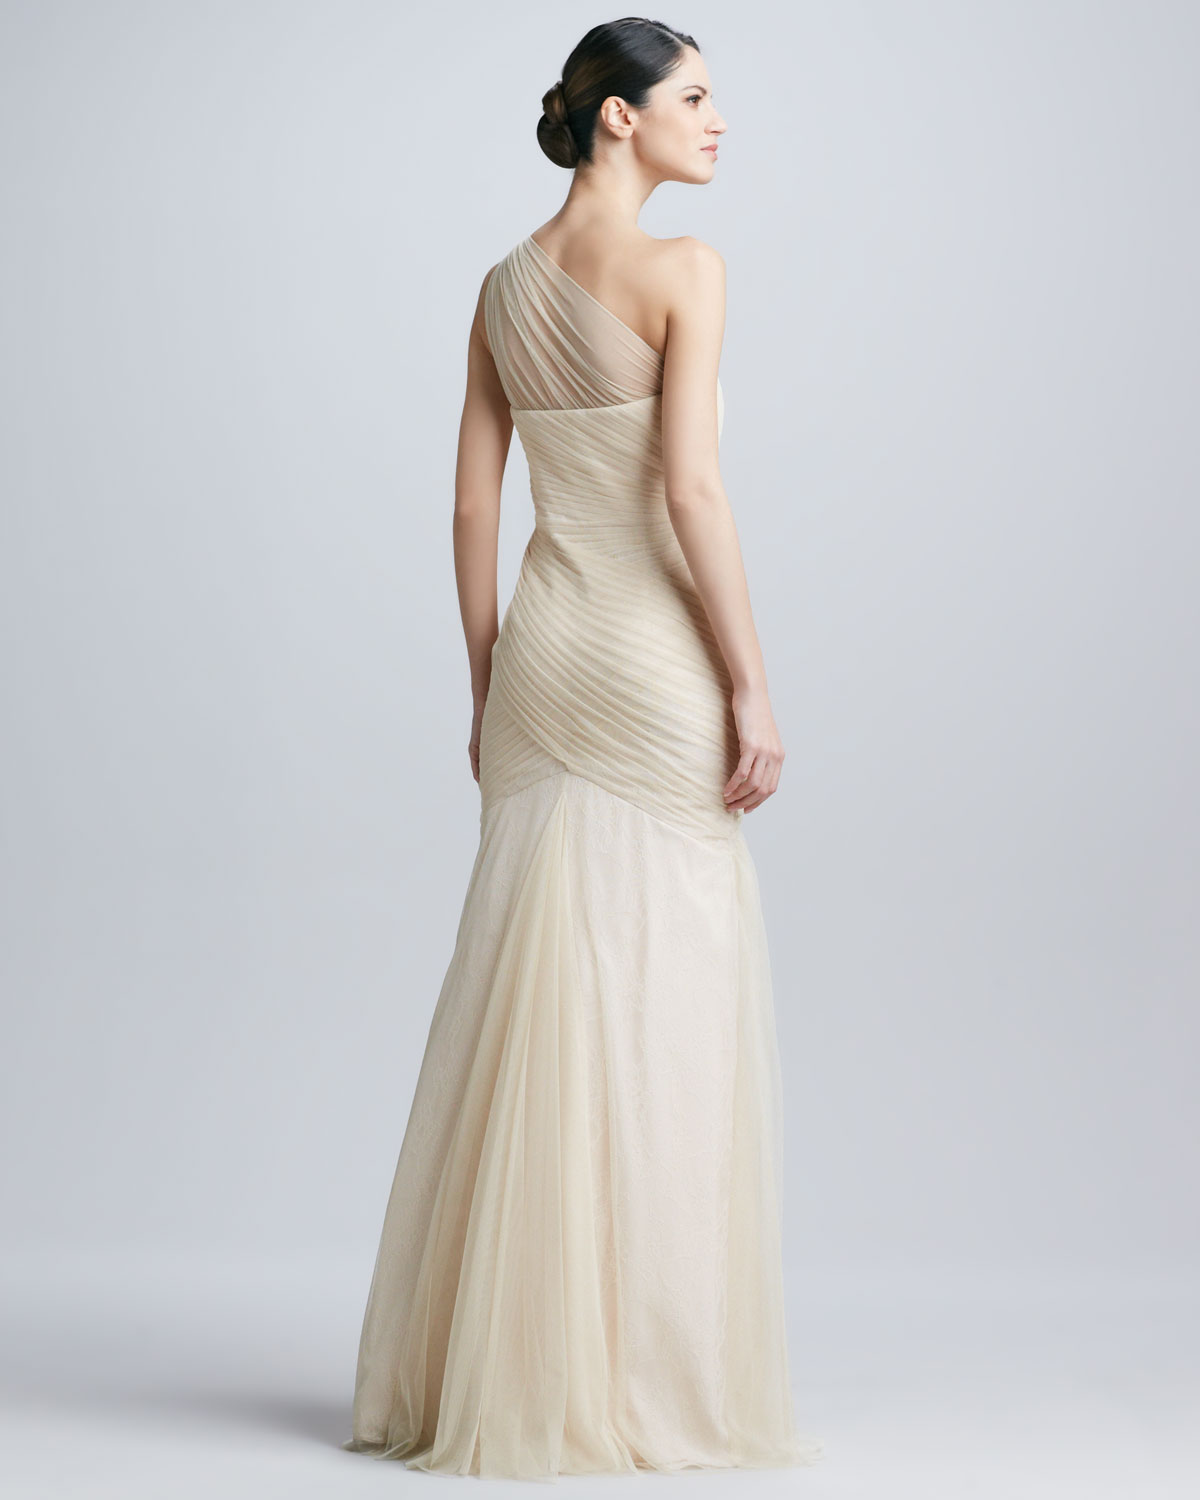 Lyst - Ml Monique Lhuillier One Shoulder Tulle Gown in White